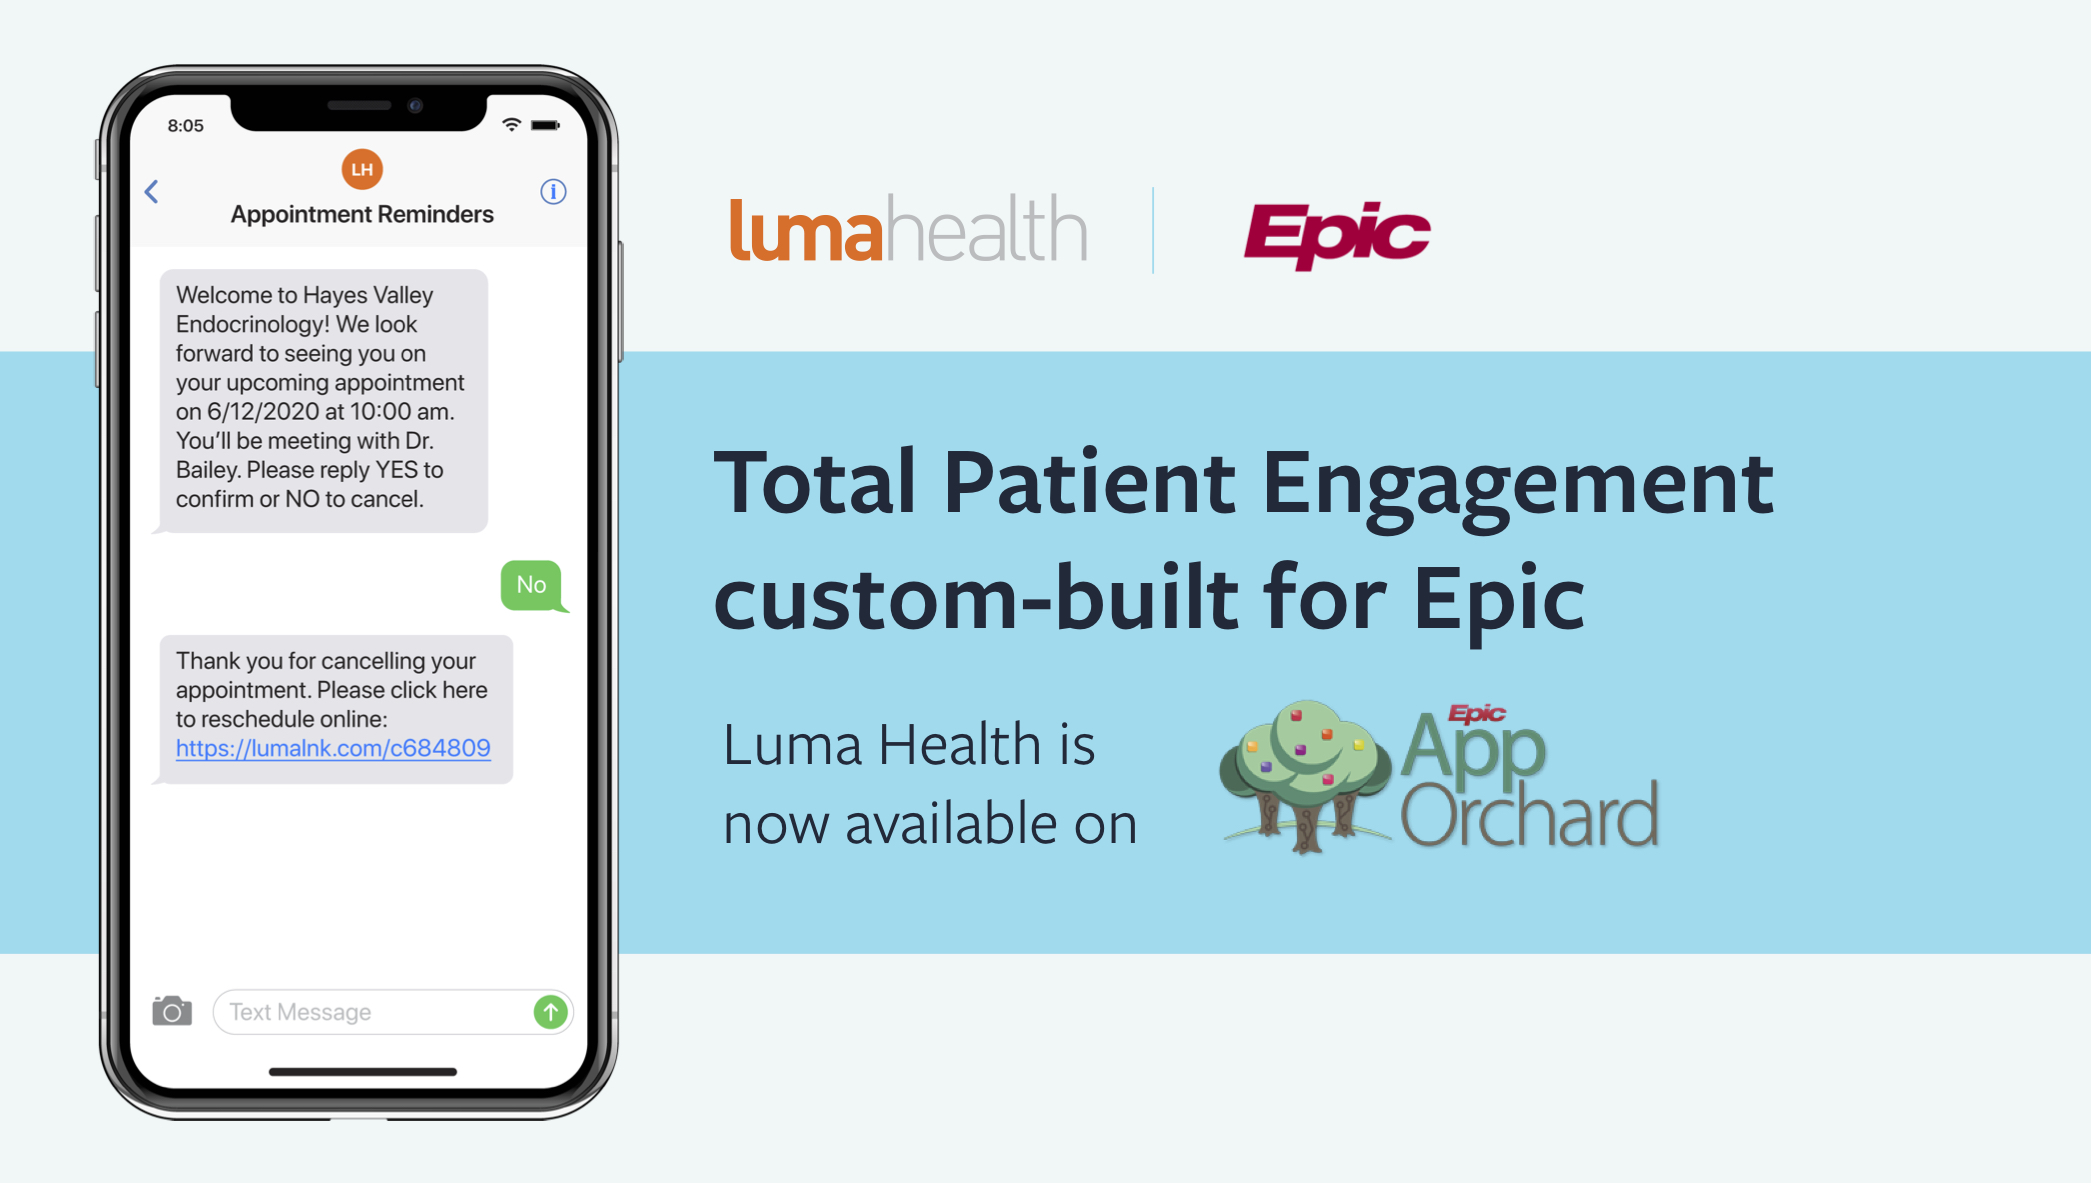 The Patient Communication Platform Providers Love Is Now Available On Epic App Orchard